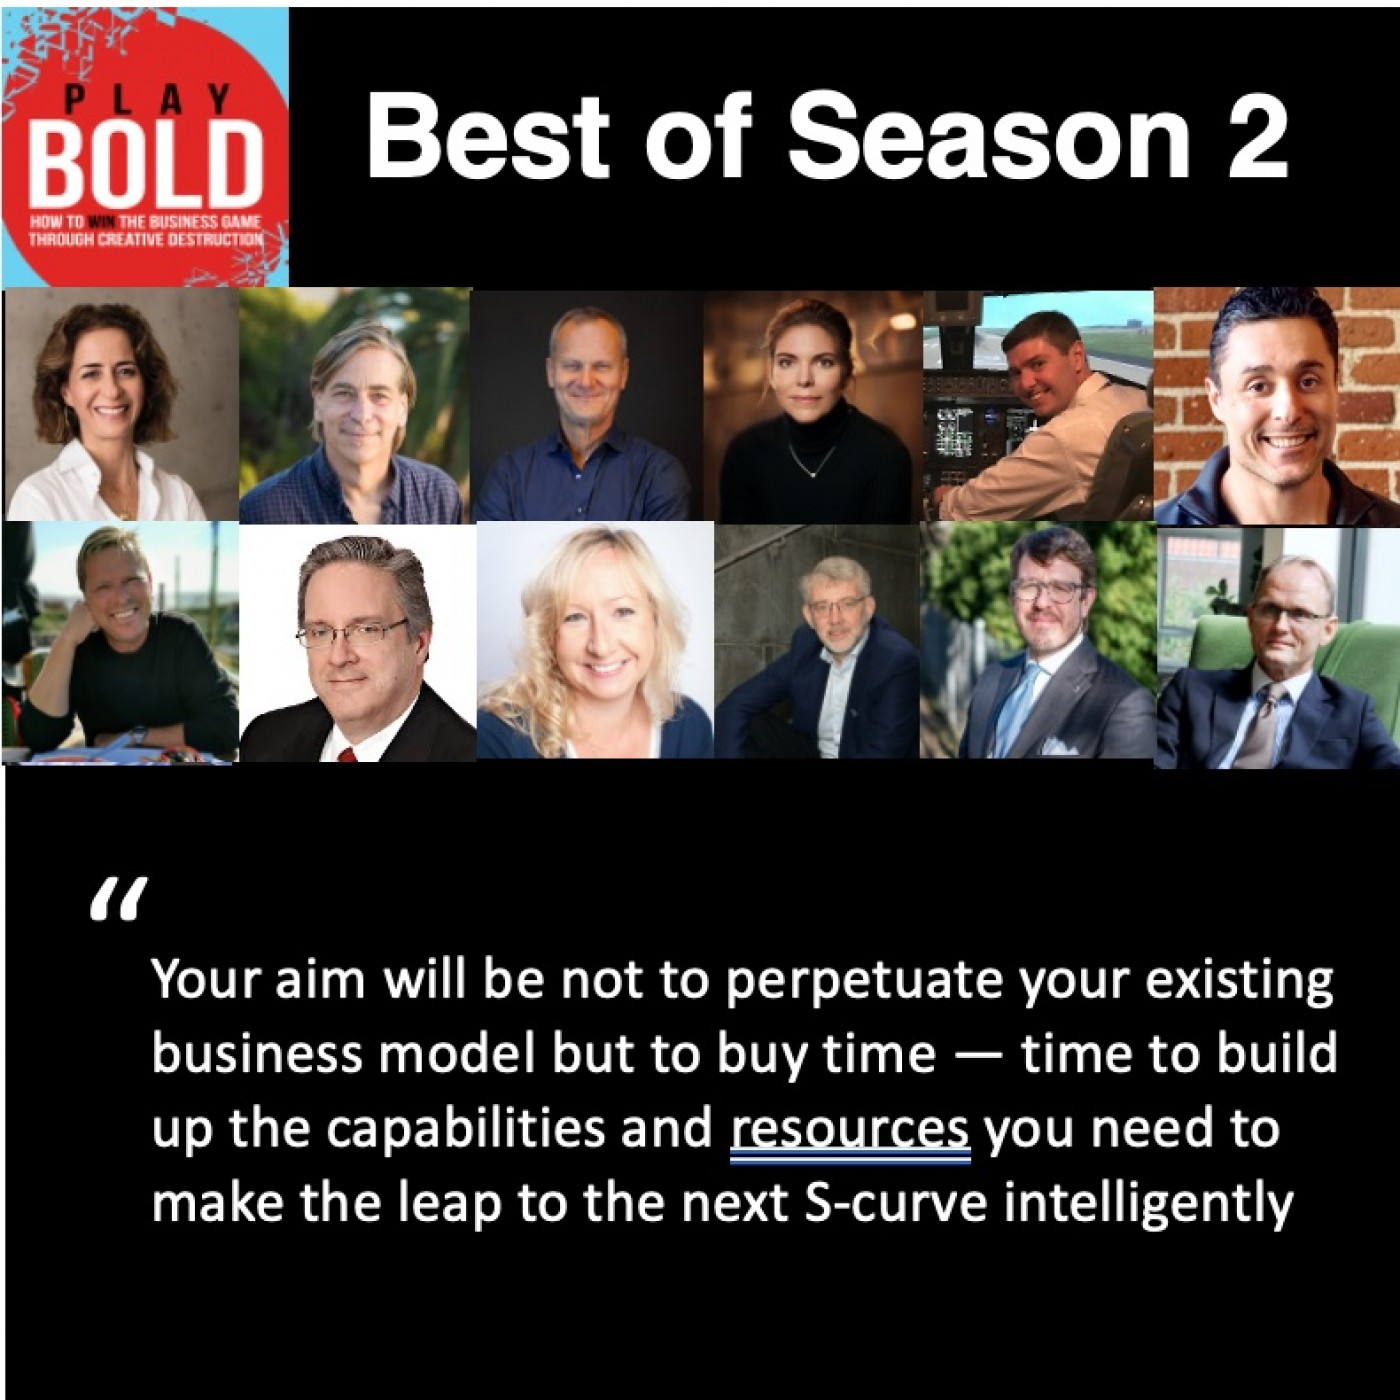 Play Bold: The Best of Season 2